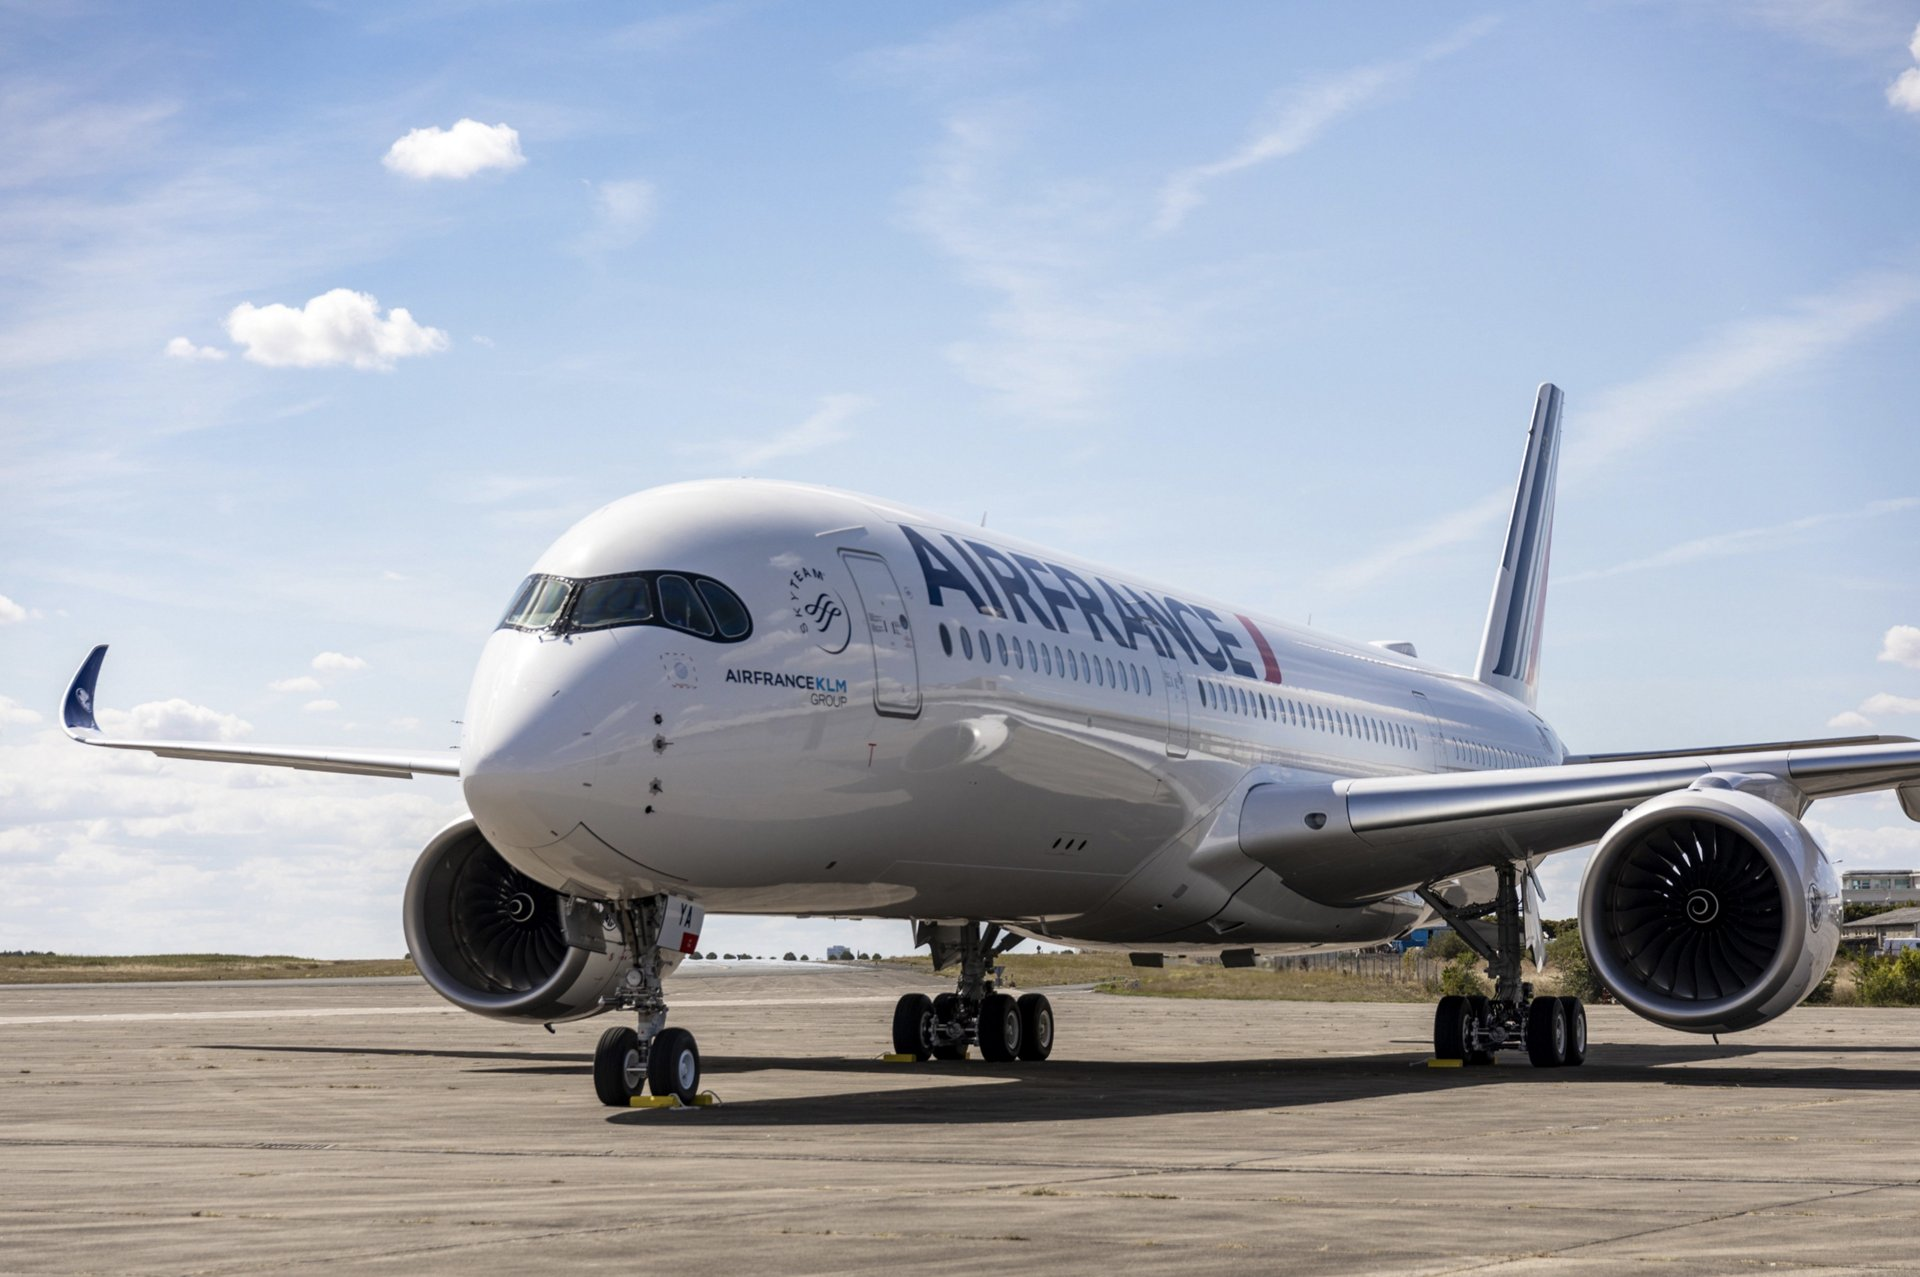 Airbus announces suspension of manufacturing at its sites in France and Spain due to Corona